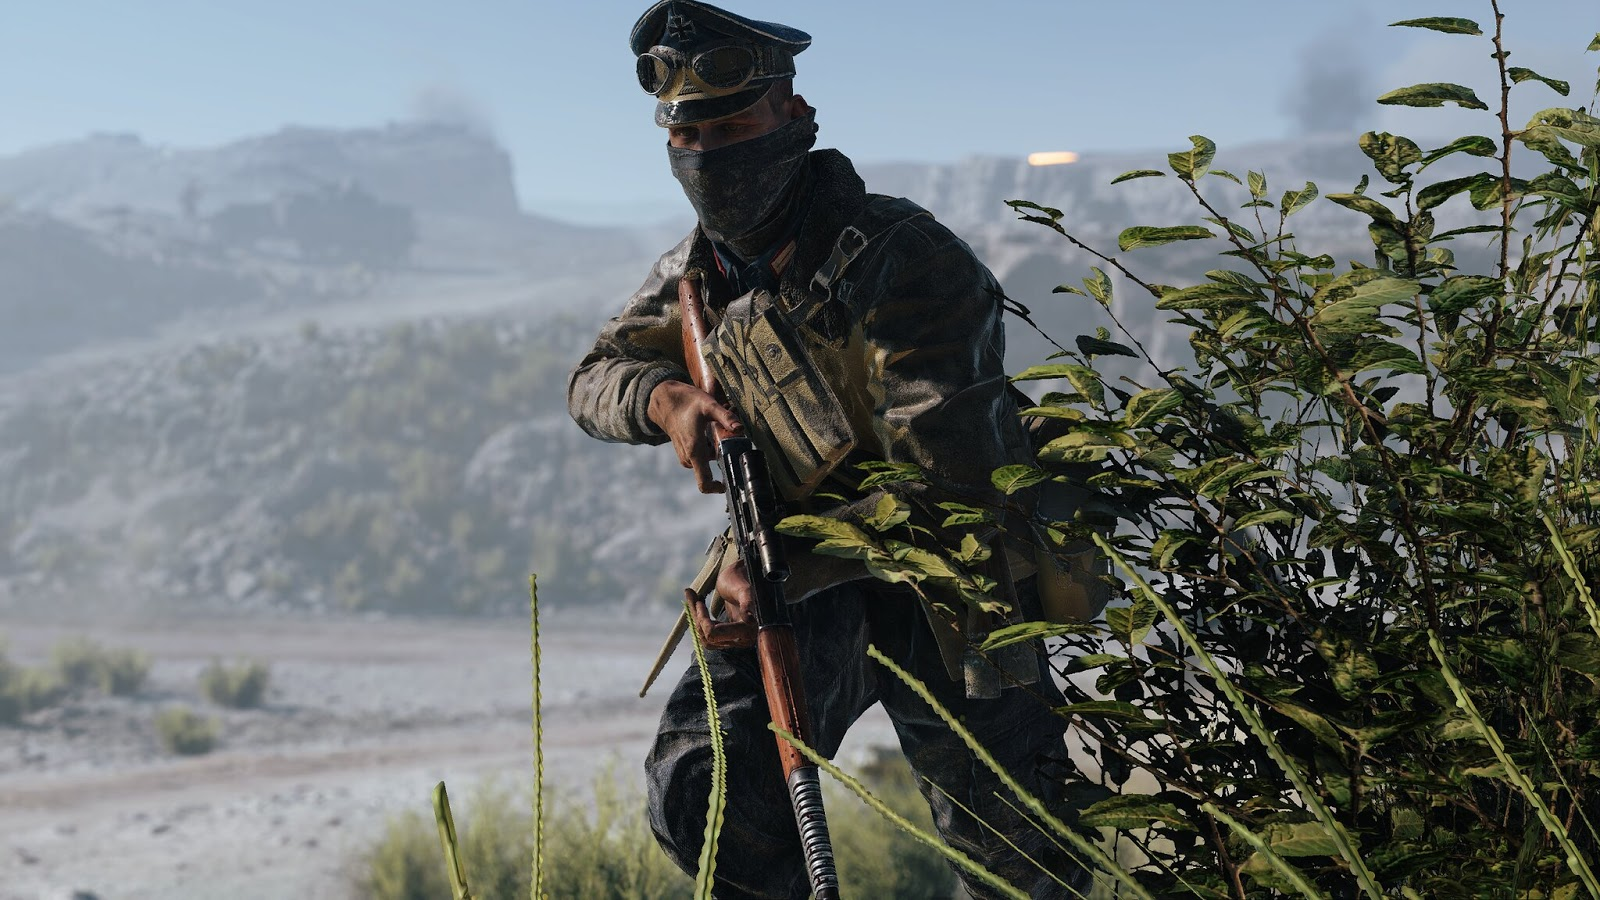 Battlefield V update - Img: Chris177uk